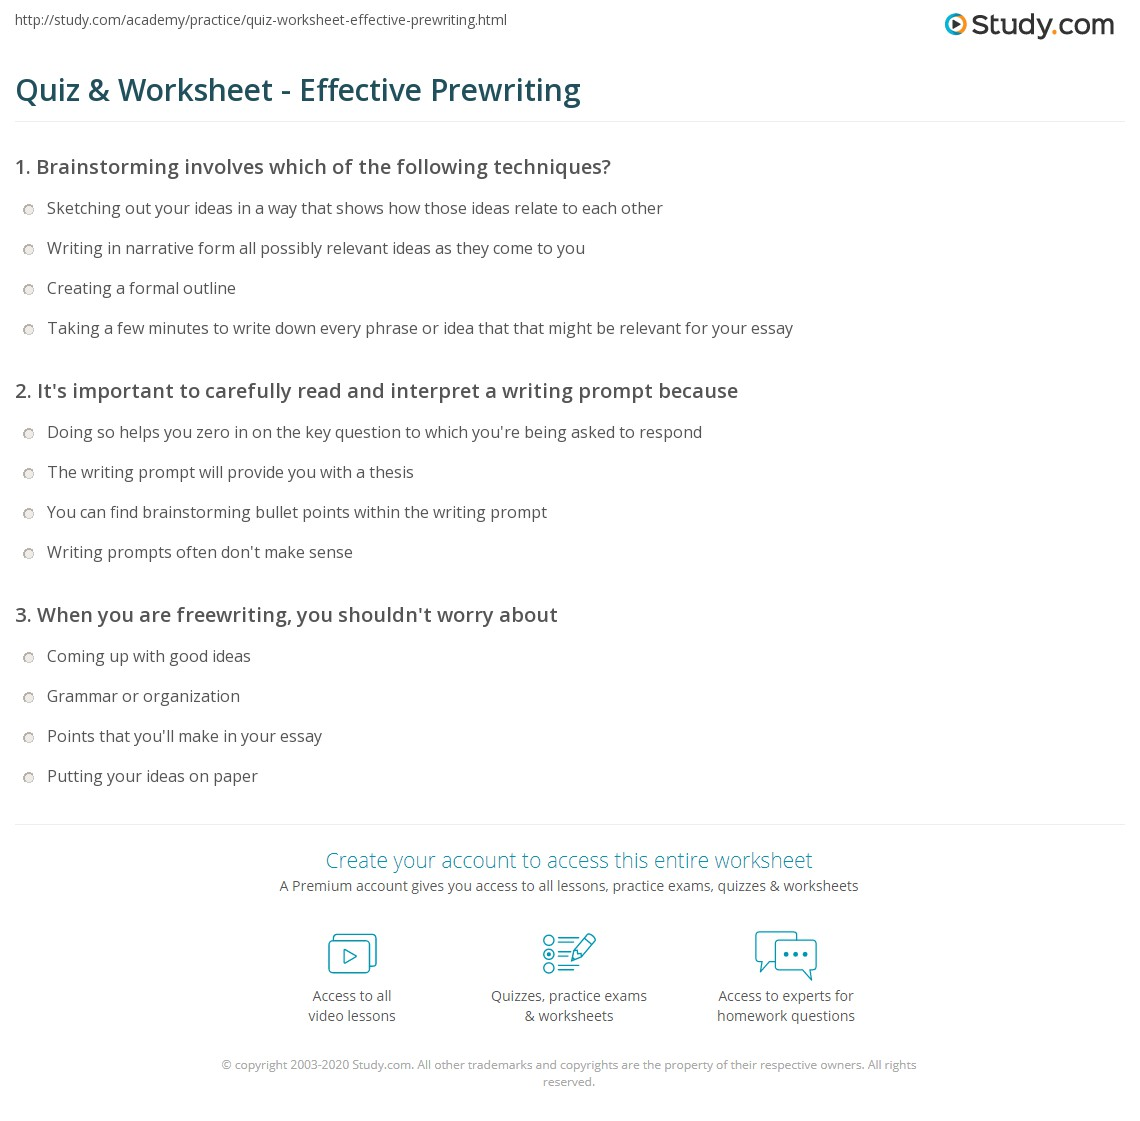 quiz worksheet effective prewriting com it s important to carefully and interpret a writing prompt because